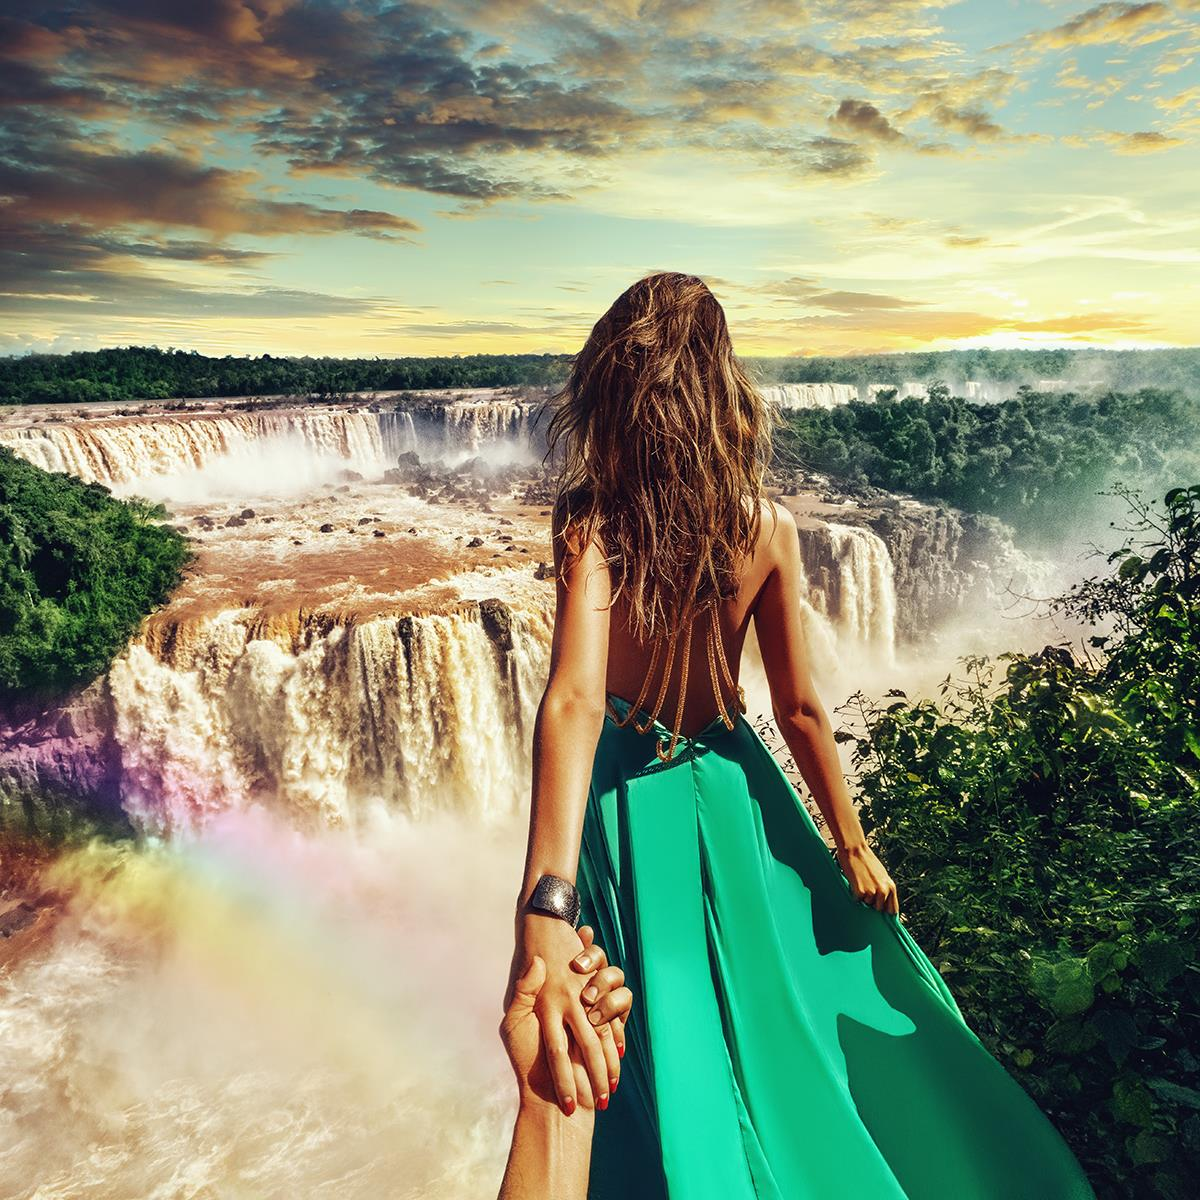 #FollowMeTo Iguazu